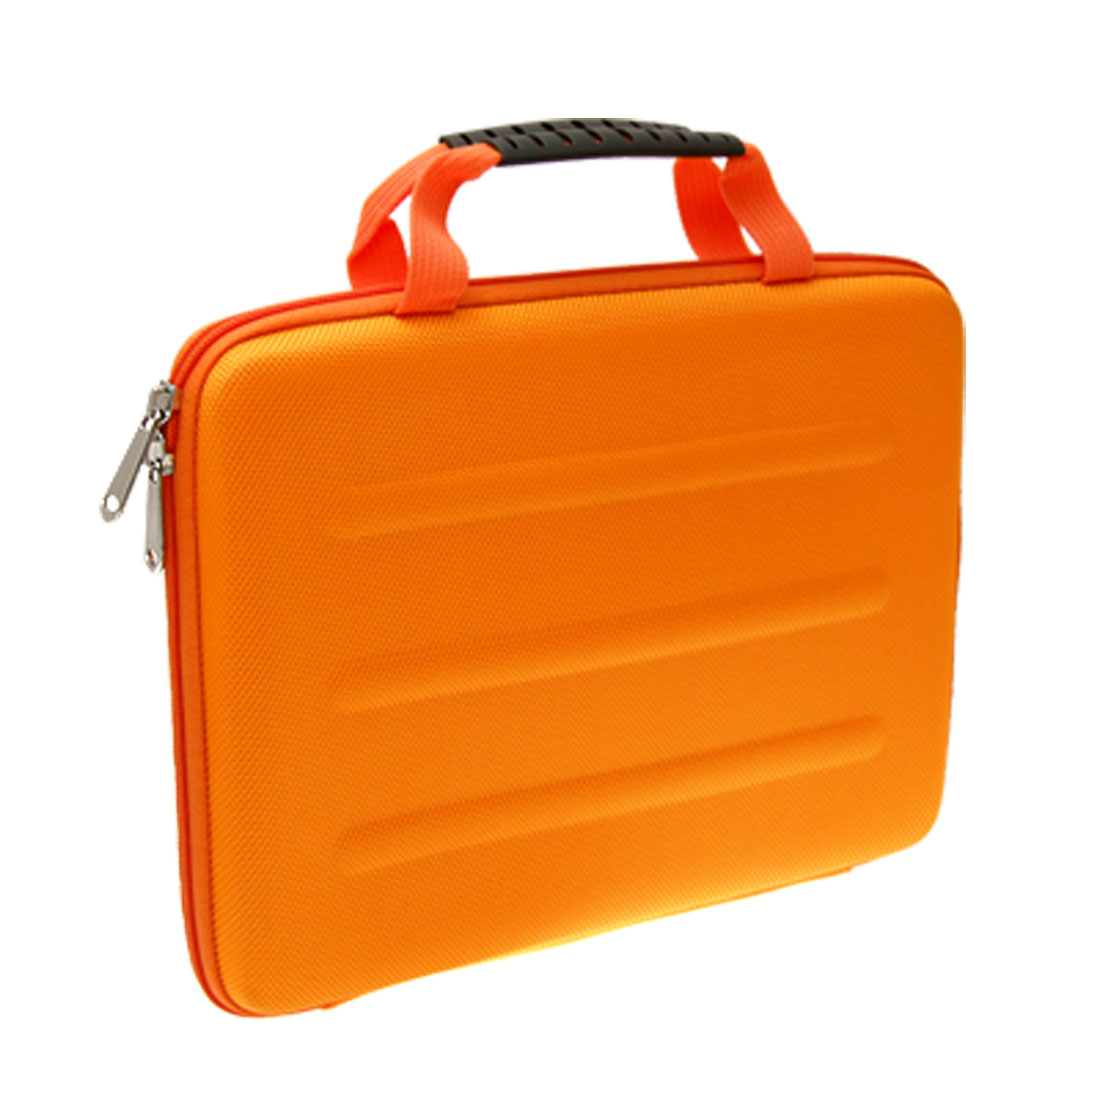 "10"" 10.1"" 10.2"" Orange Padded Foam Notebook Laptop Sleeve Bag Case"